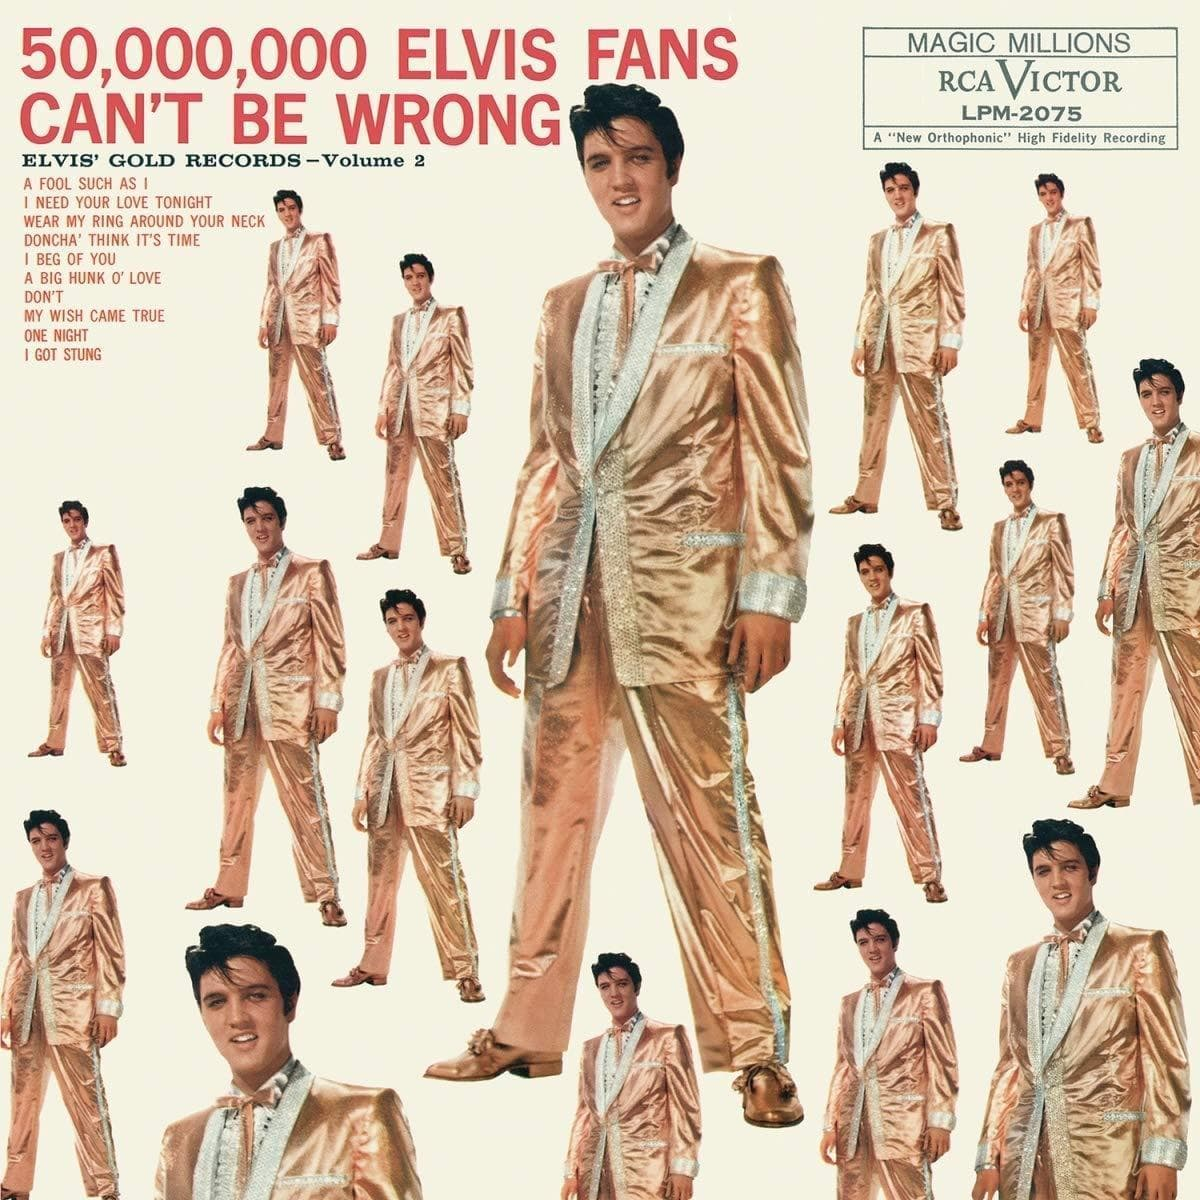 50,000,000 Elvis Fans Can't Be Wrong: Elvis' Gold Records Volume 2 [Vinyl]